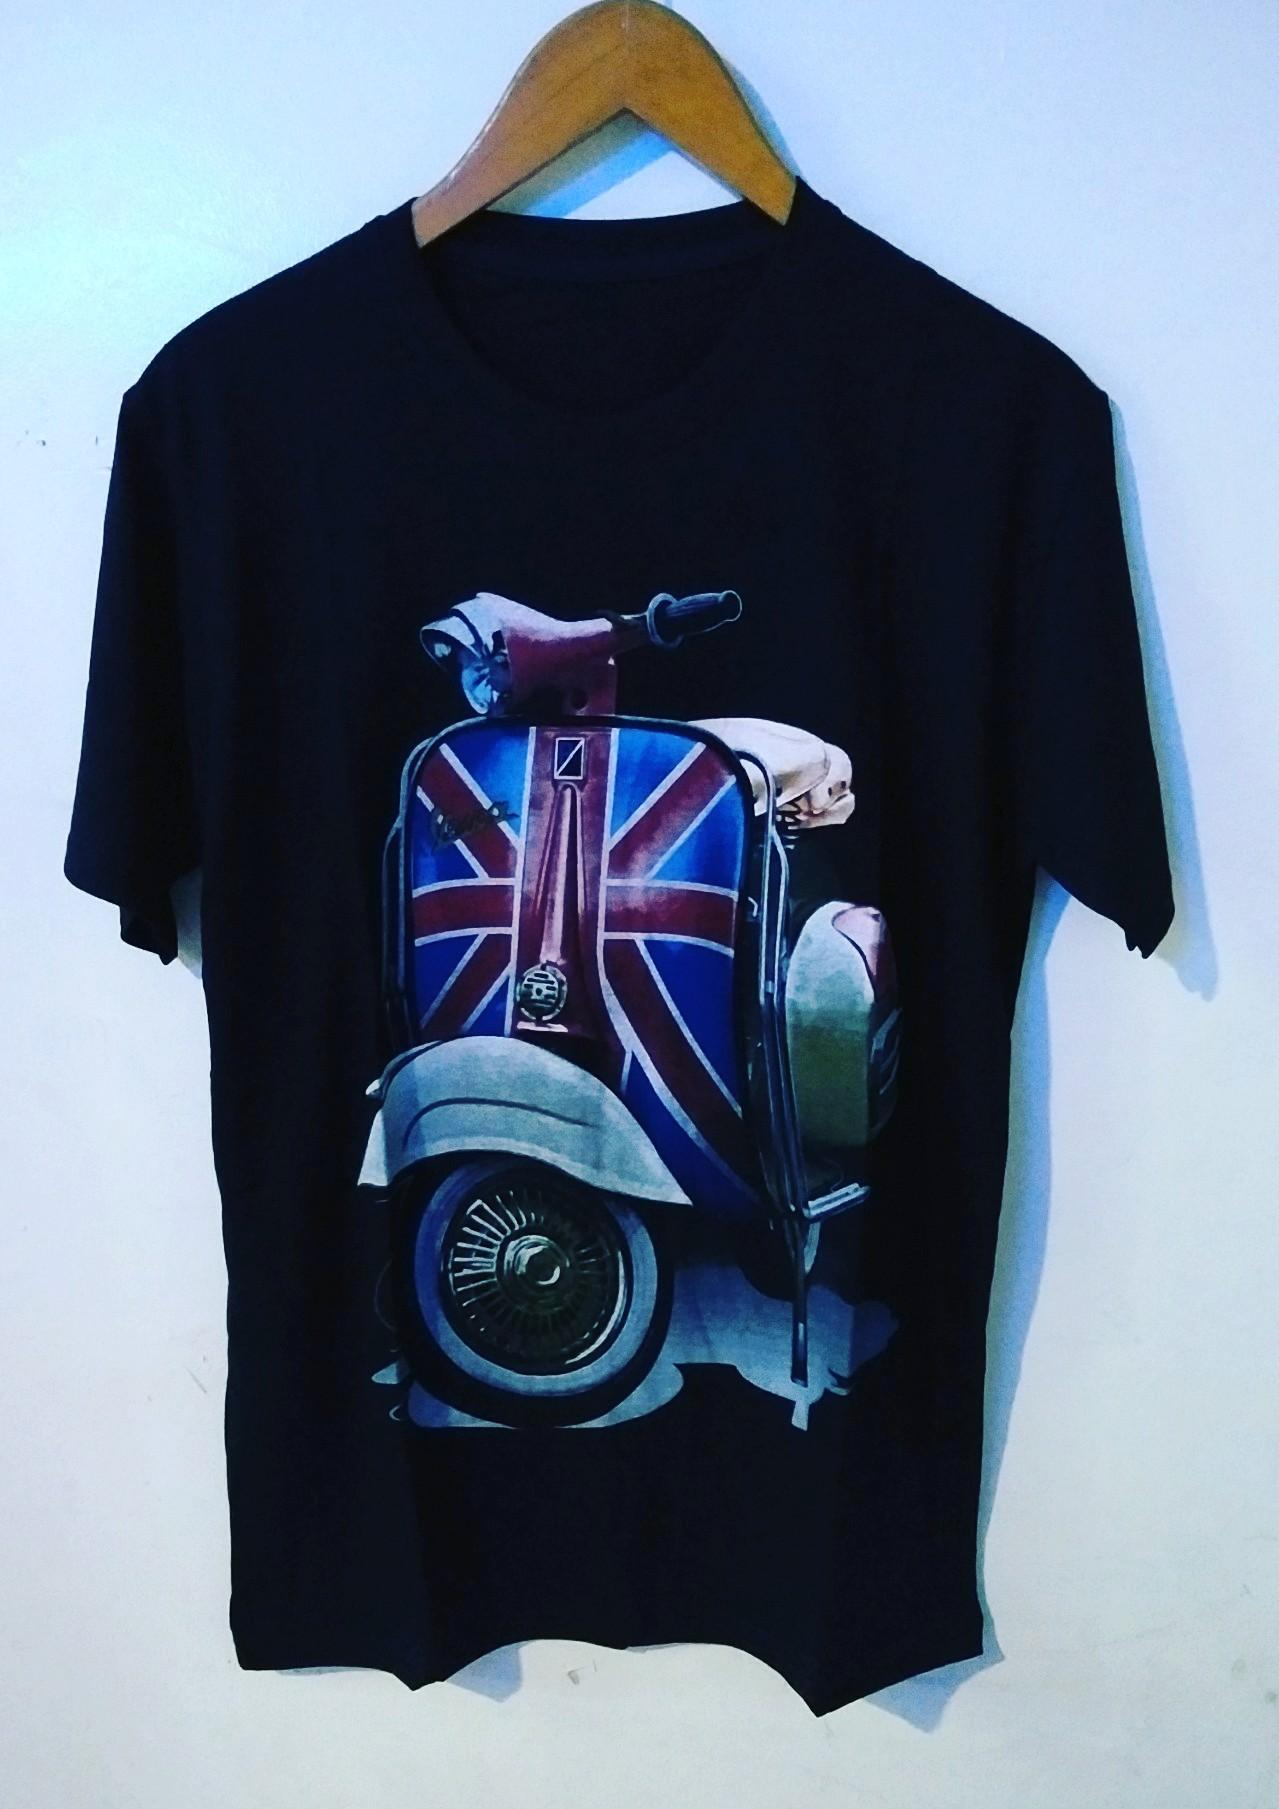 Amazon distro - kaos distro T-shirt  fashion 100% soft  cotton combed 30s kaos pria kaos fashion baju distro T-shirt gambar VESPA  sablon plastisol atasan pria wanita katun marvel simple keren cowok cewek pakaian distro